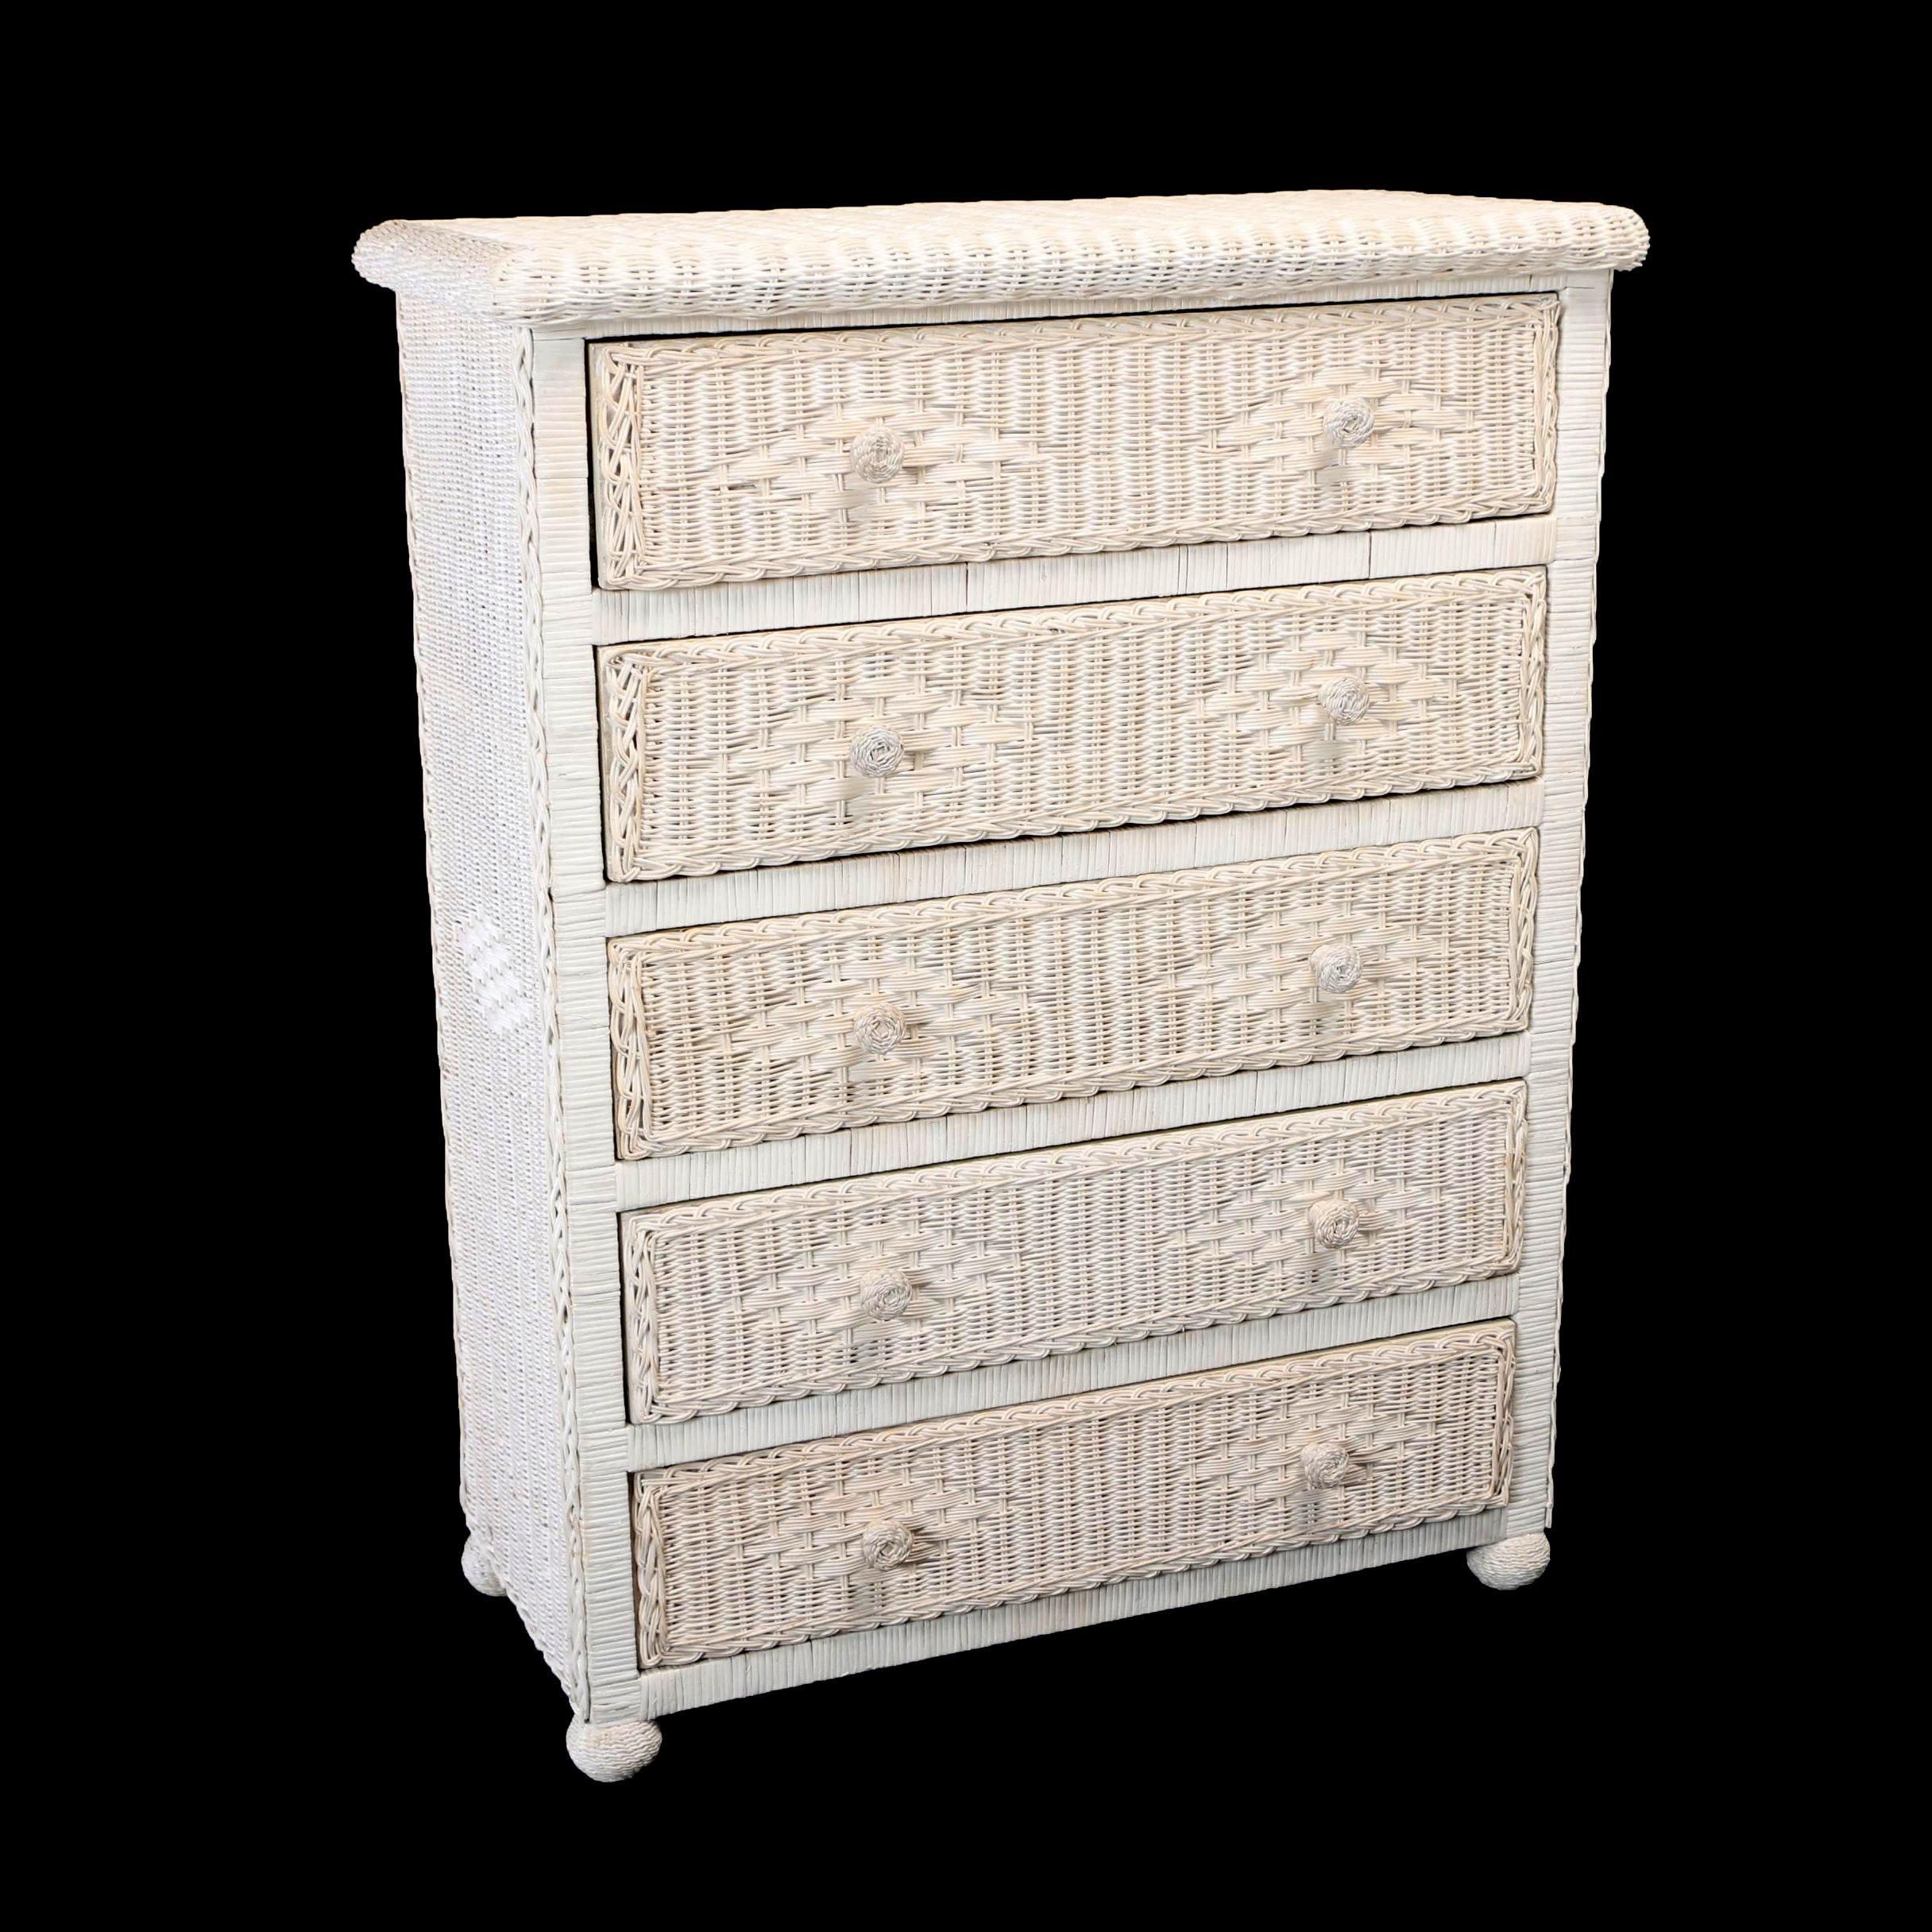 Contemporary White-Painted Wicker Chest of Drawers